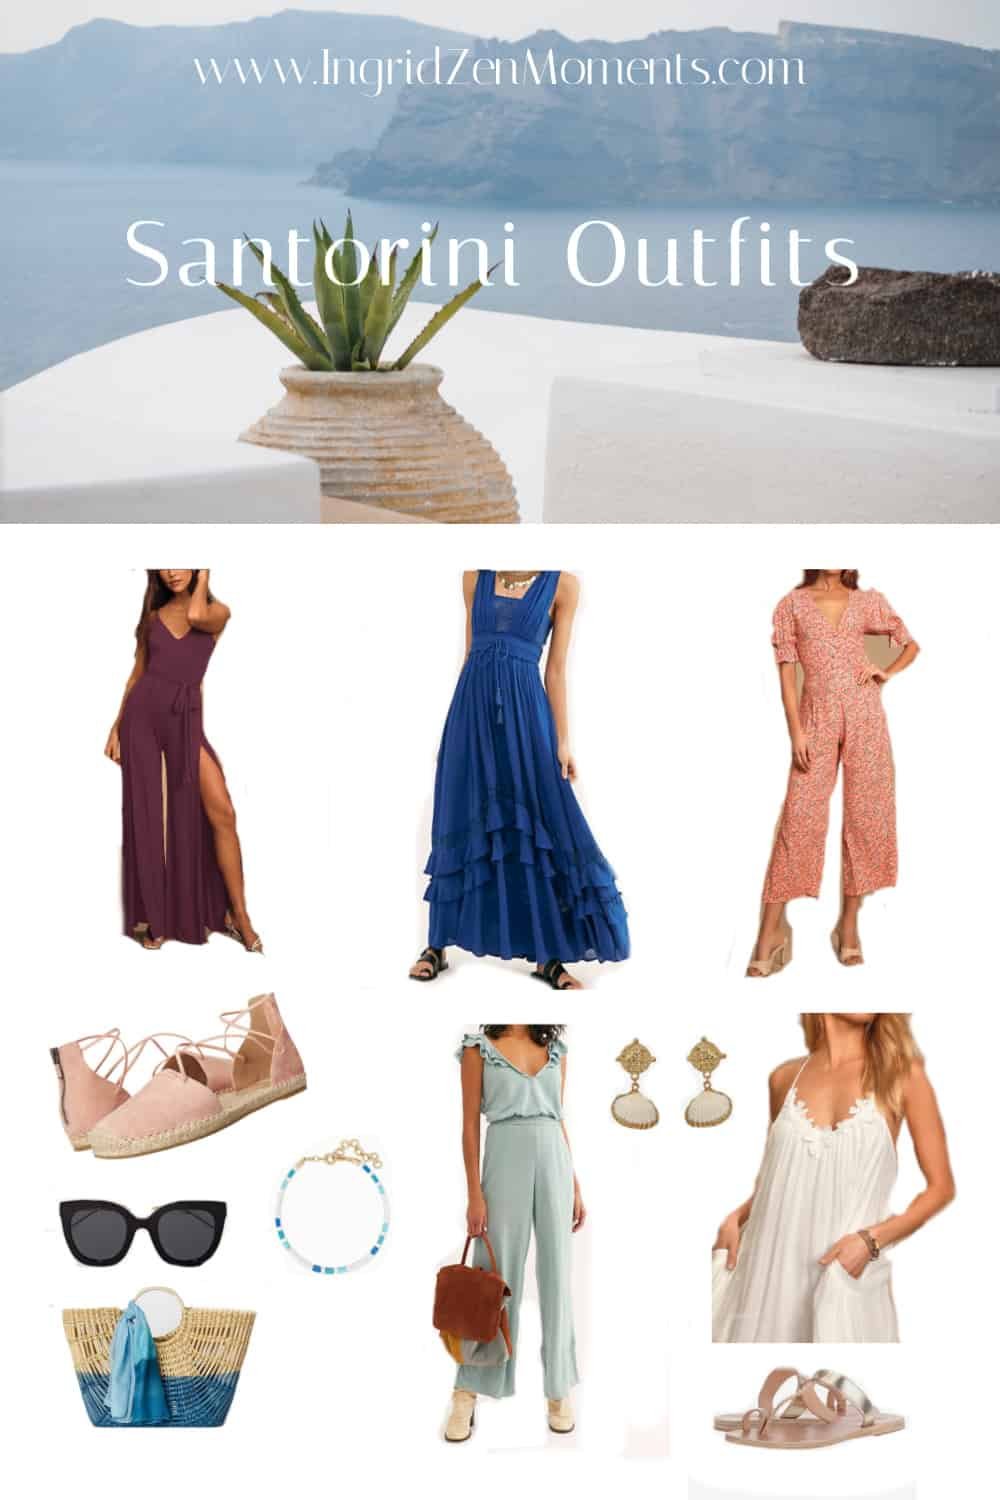 Outfits for Santorini in spring